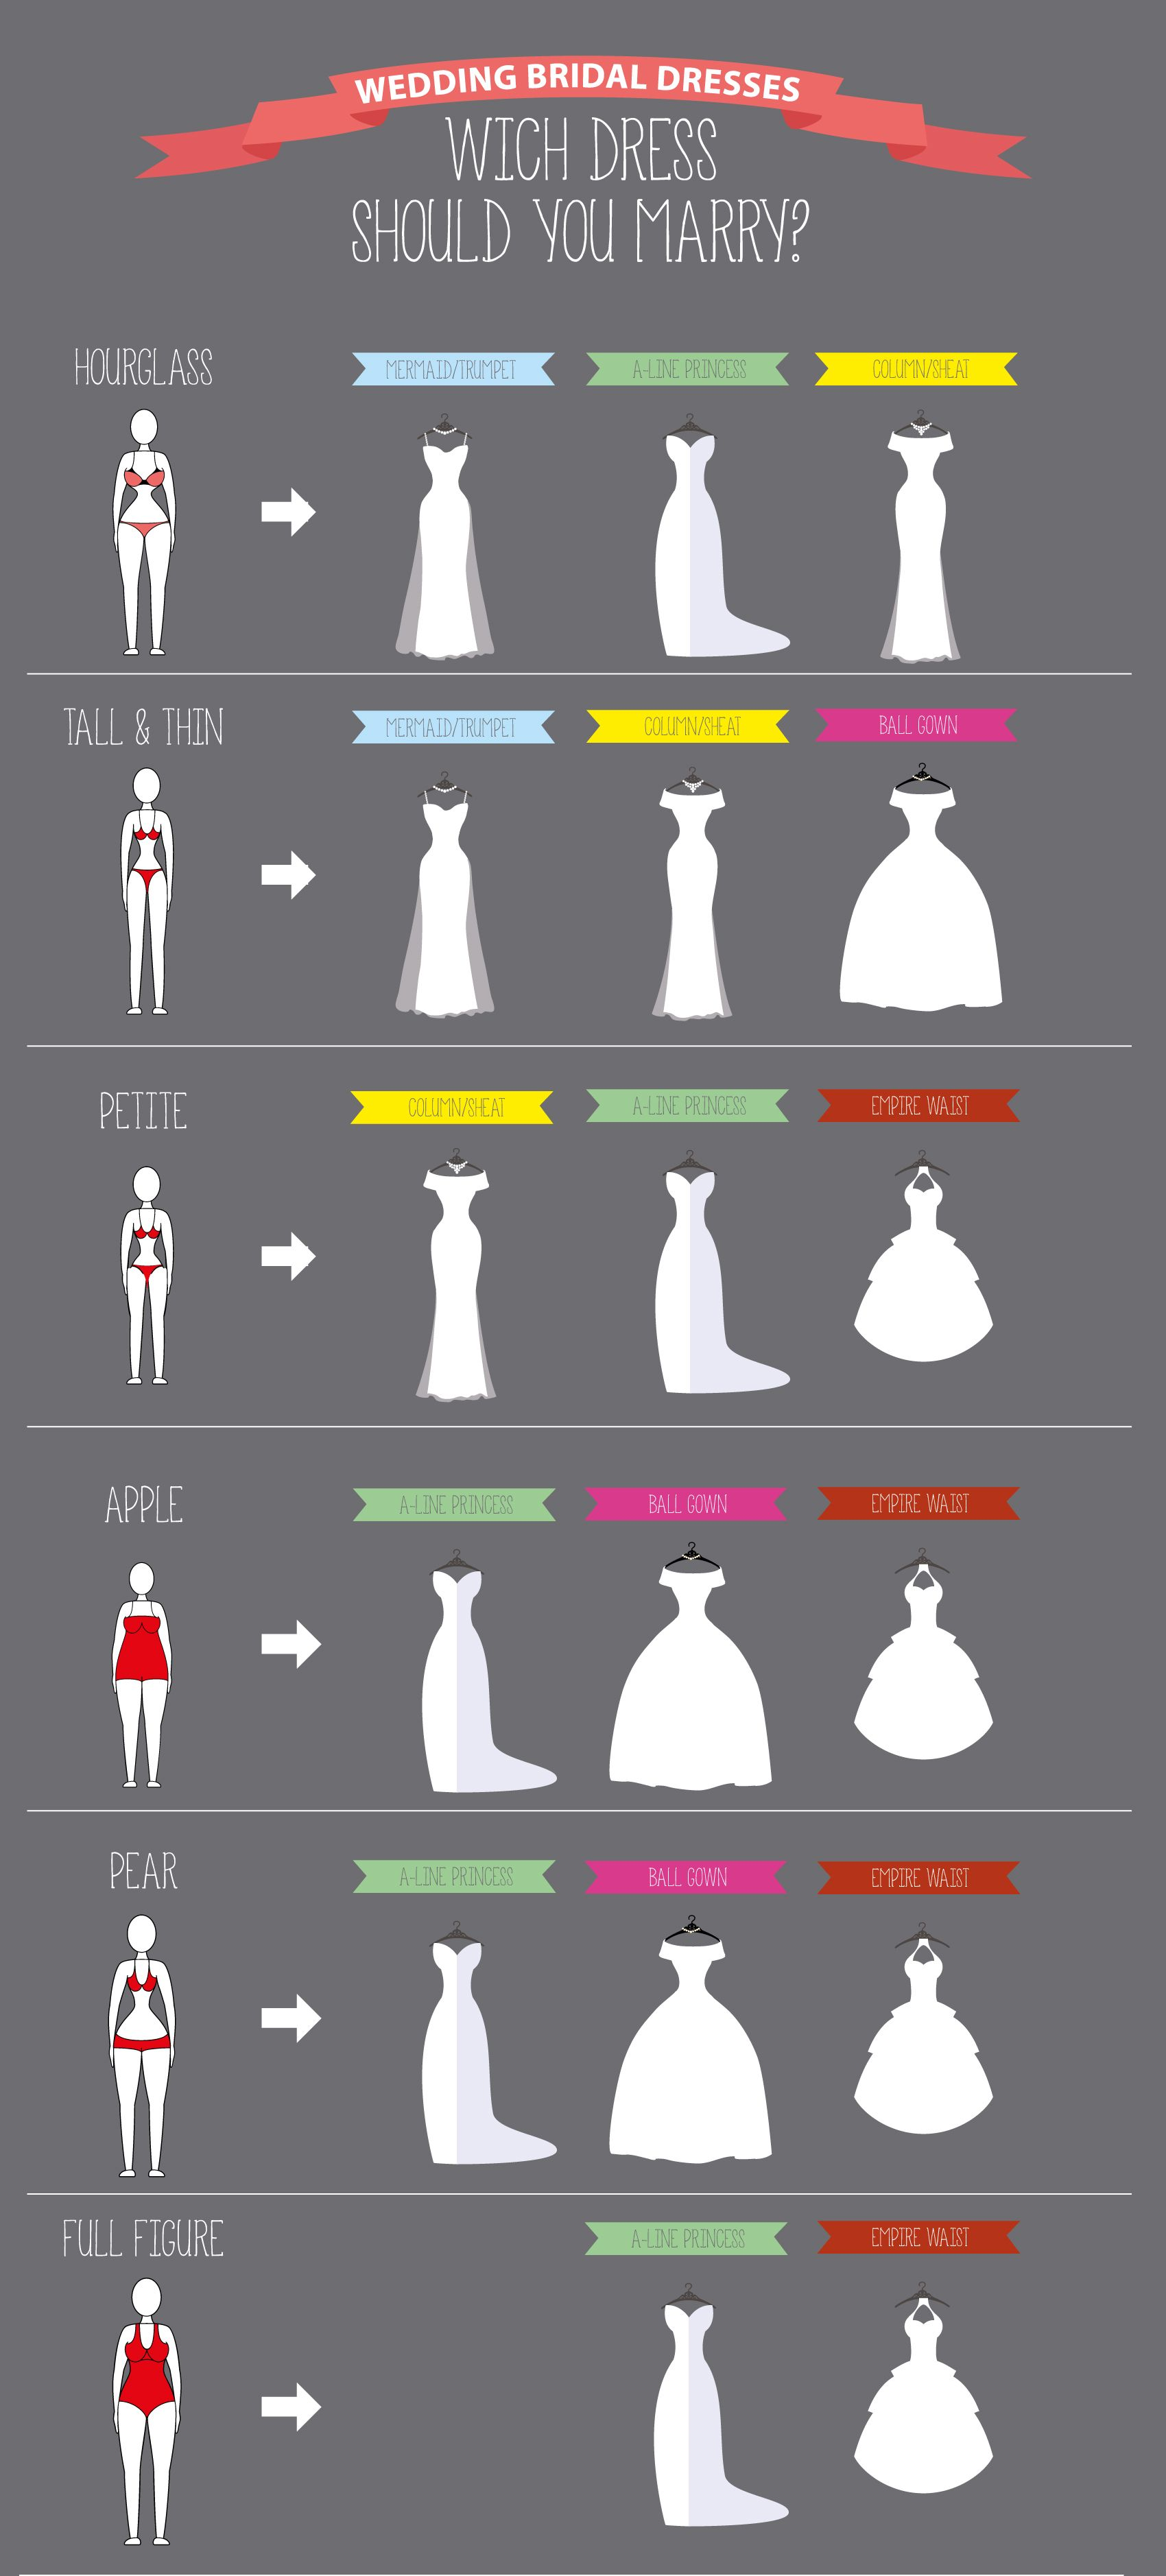 The ultimate wedding dress lingo cheat sheet my wedding